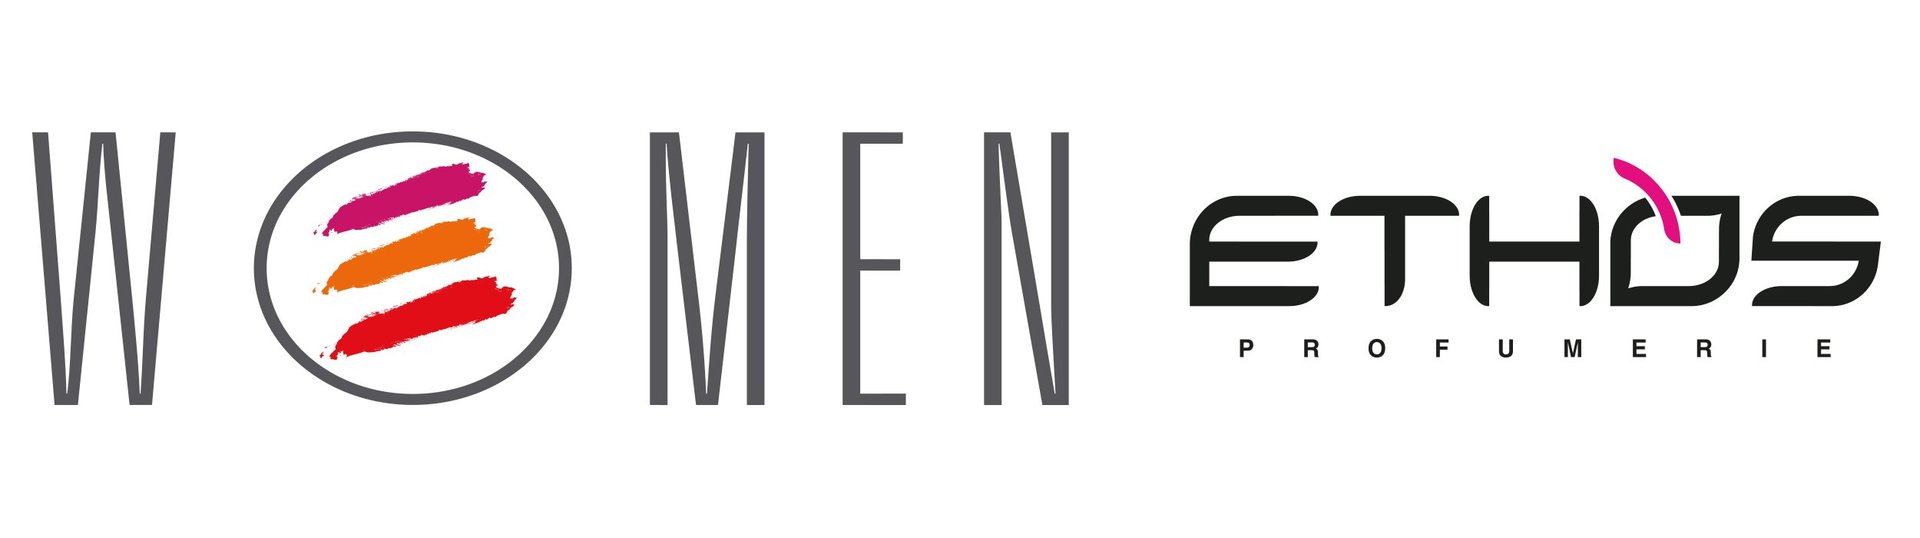 WOMEN PROFUMERIA E BEAUTY CENTER logo